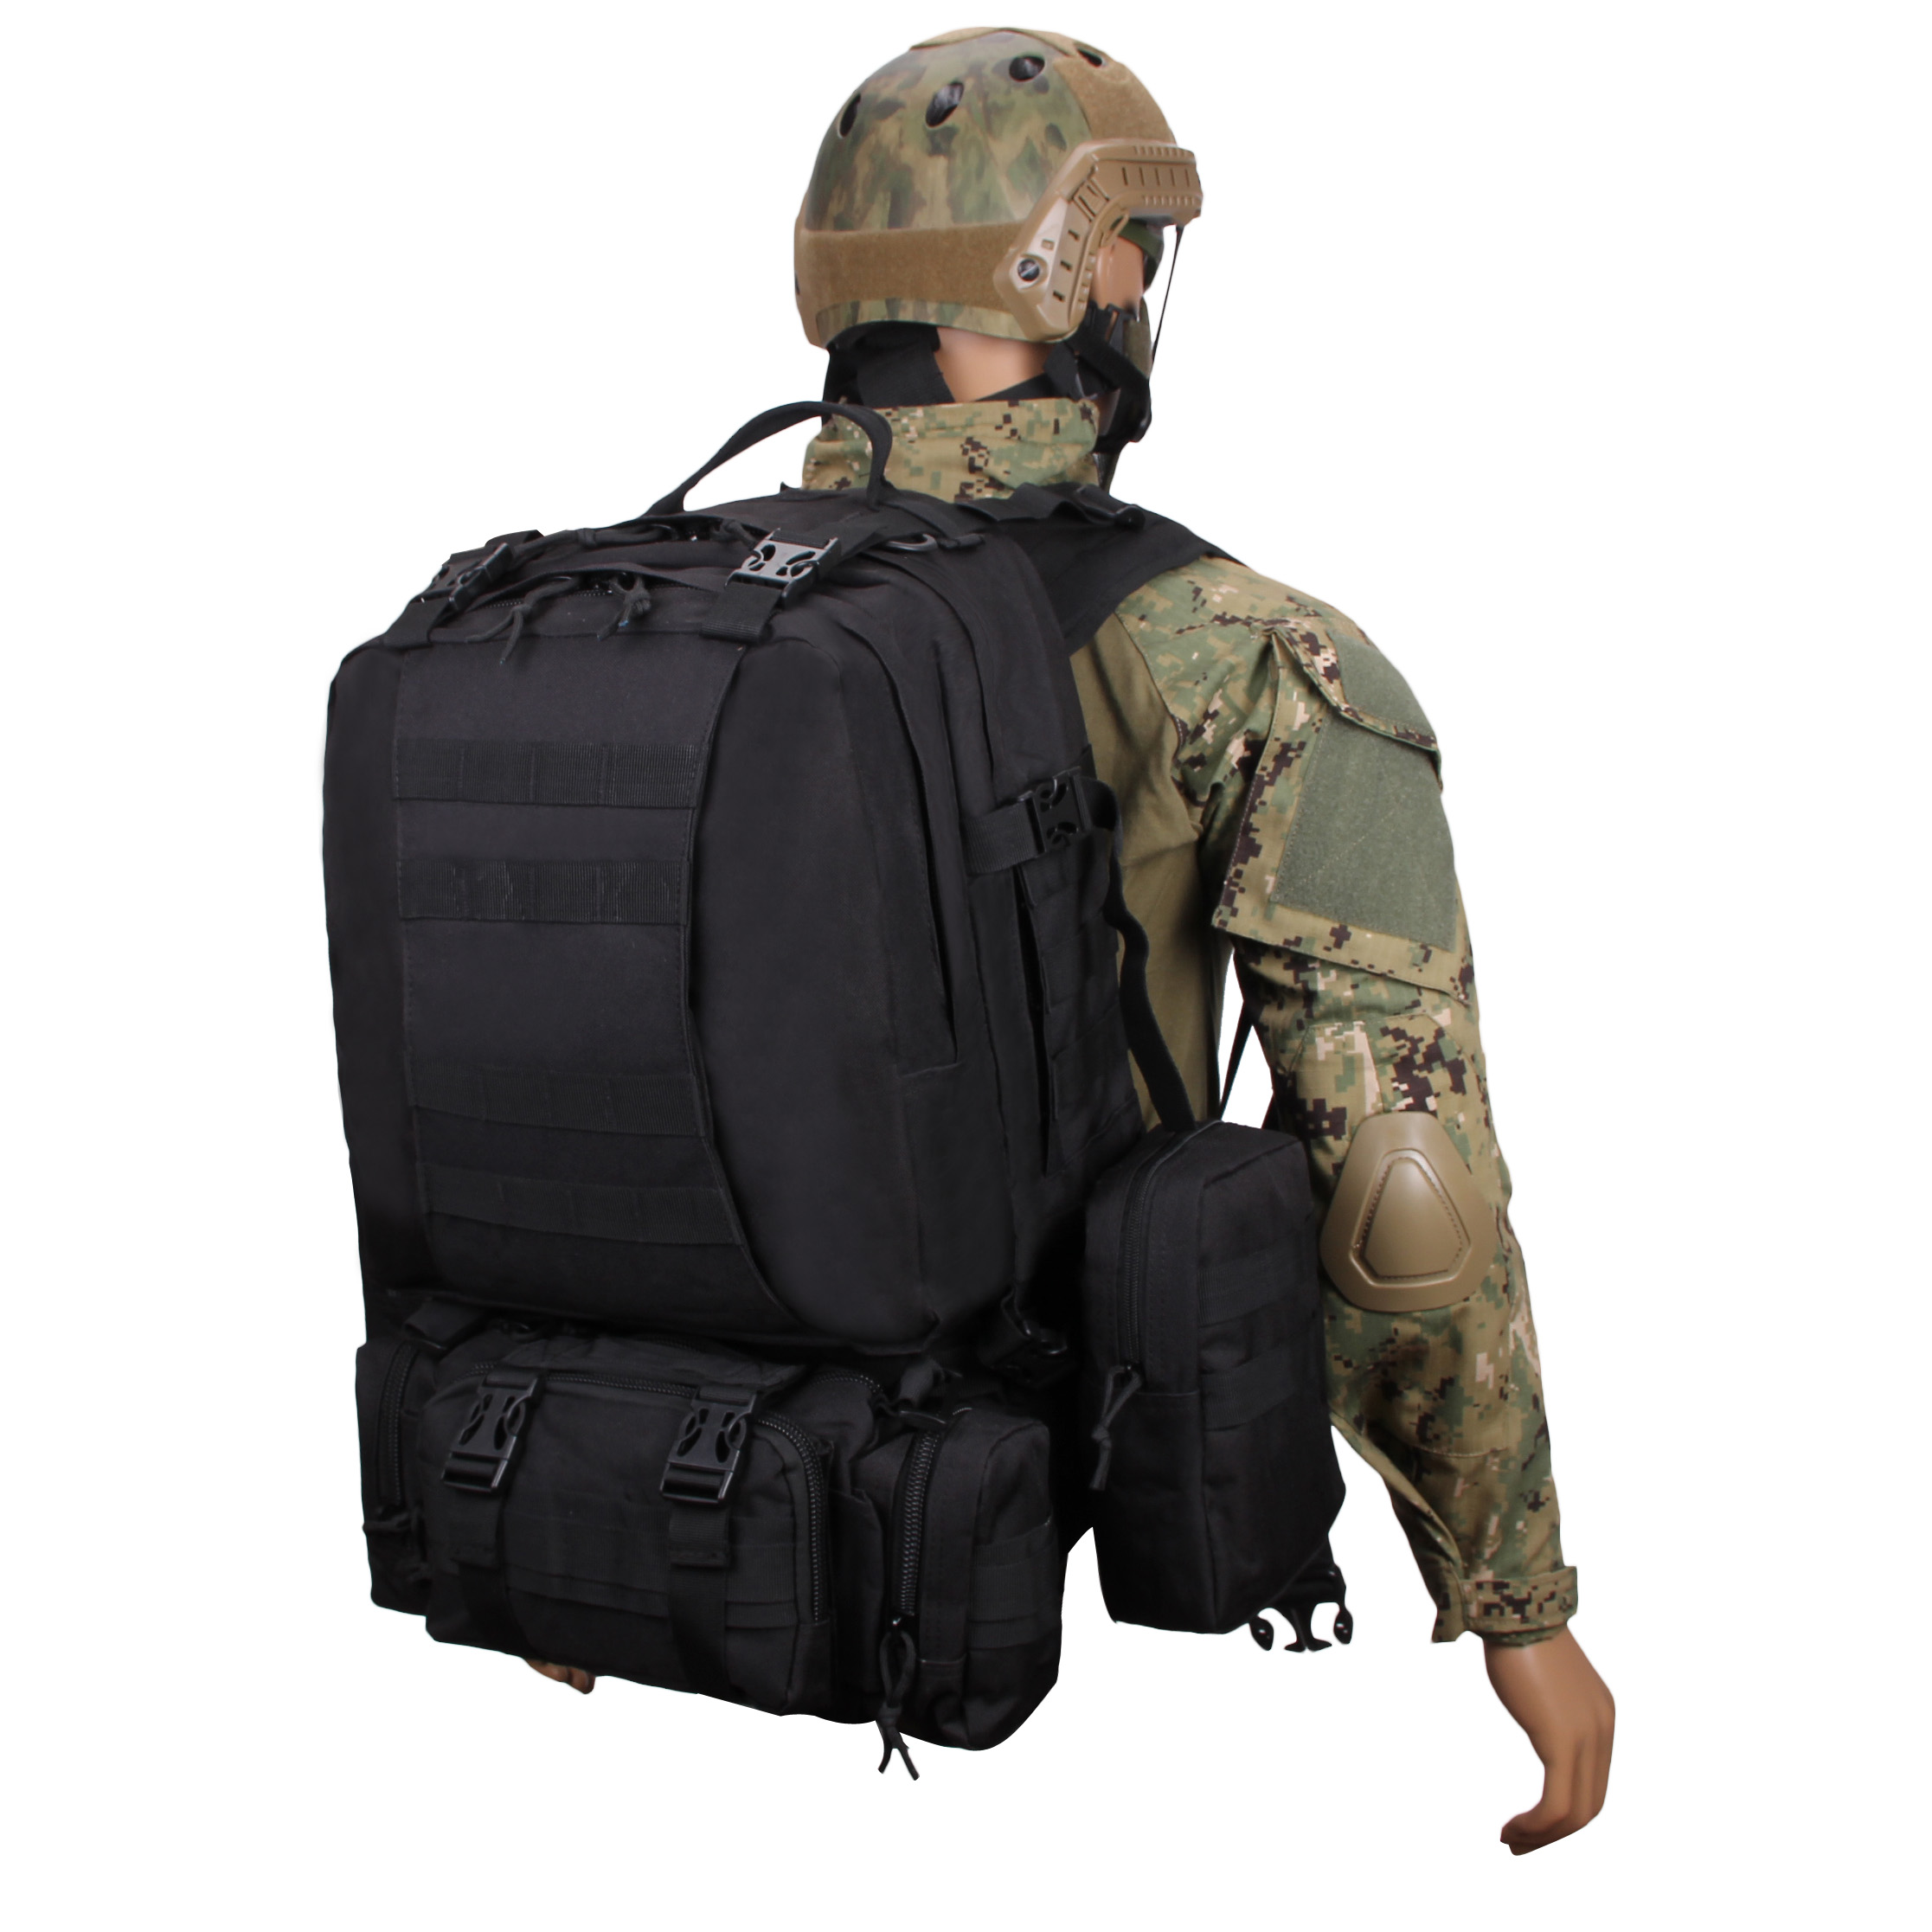 45L Large Combination Backpack Tactical Military Molle Camping Hiking Knapsack outdoor Camping Products Camouflage Backpack